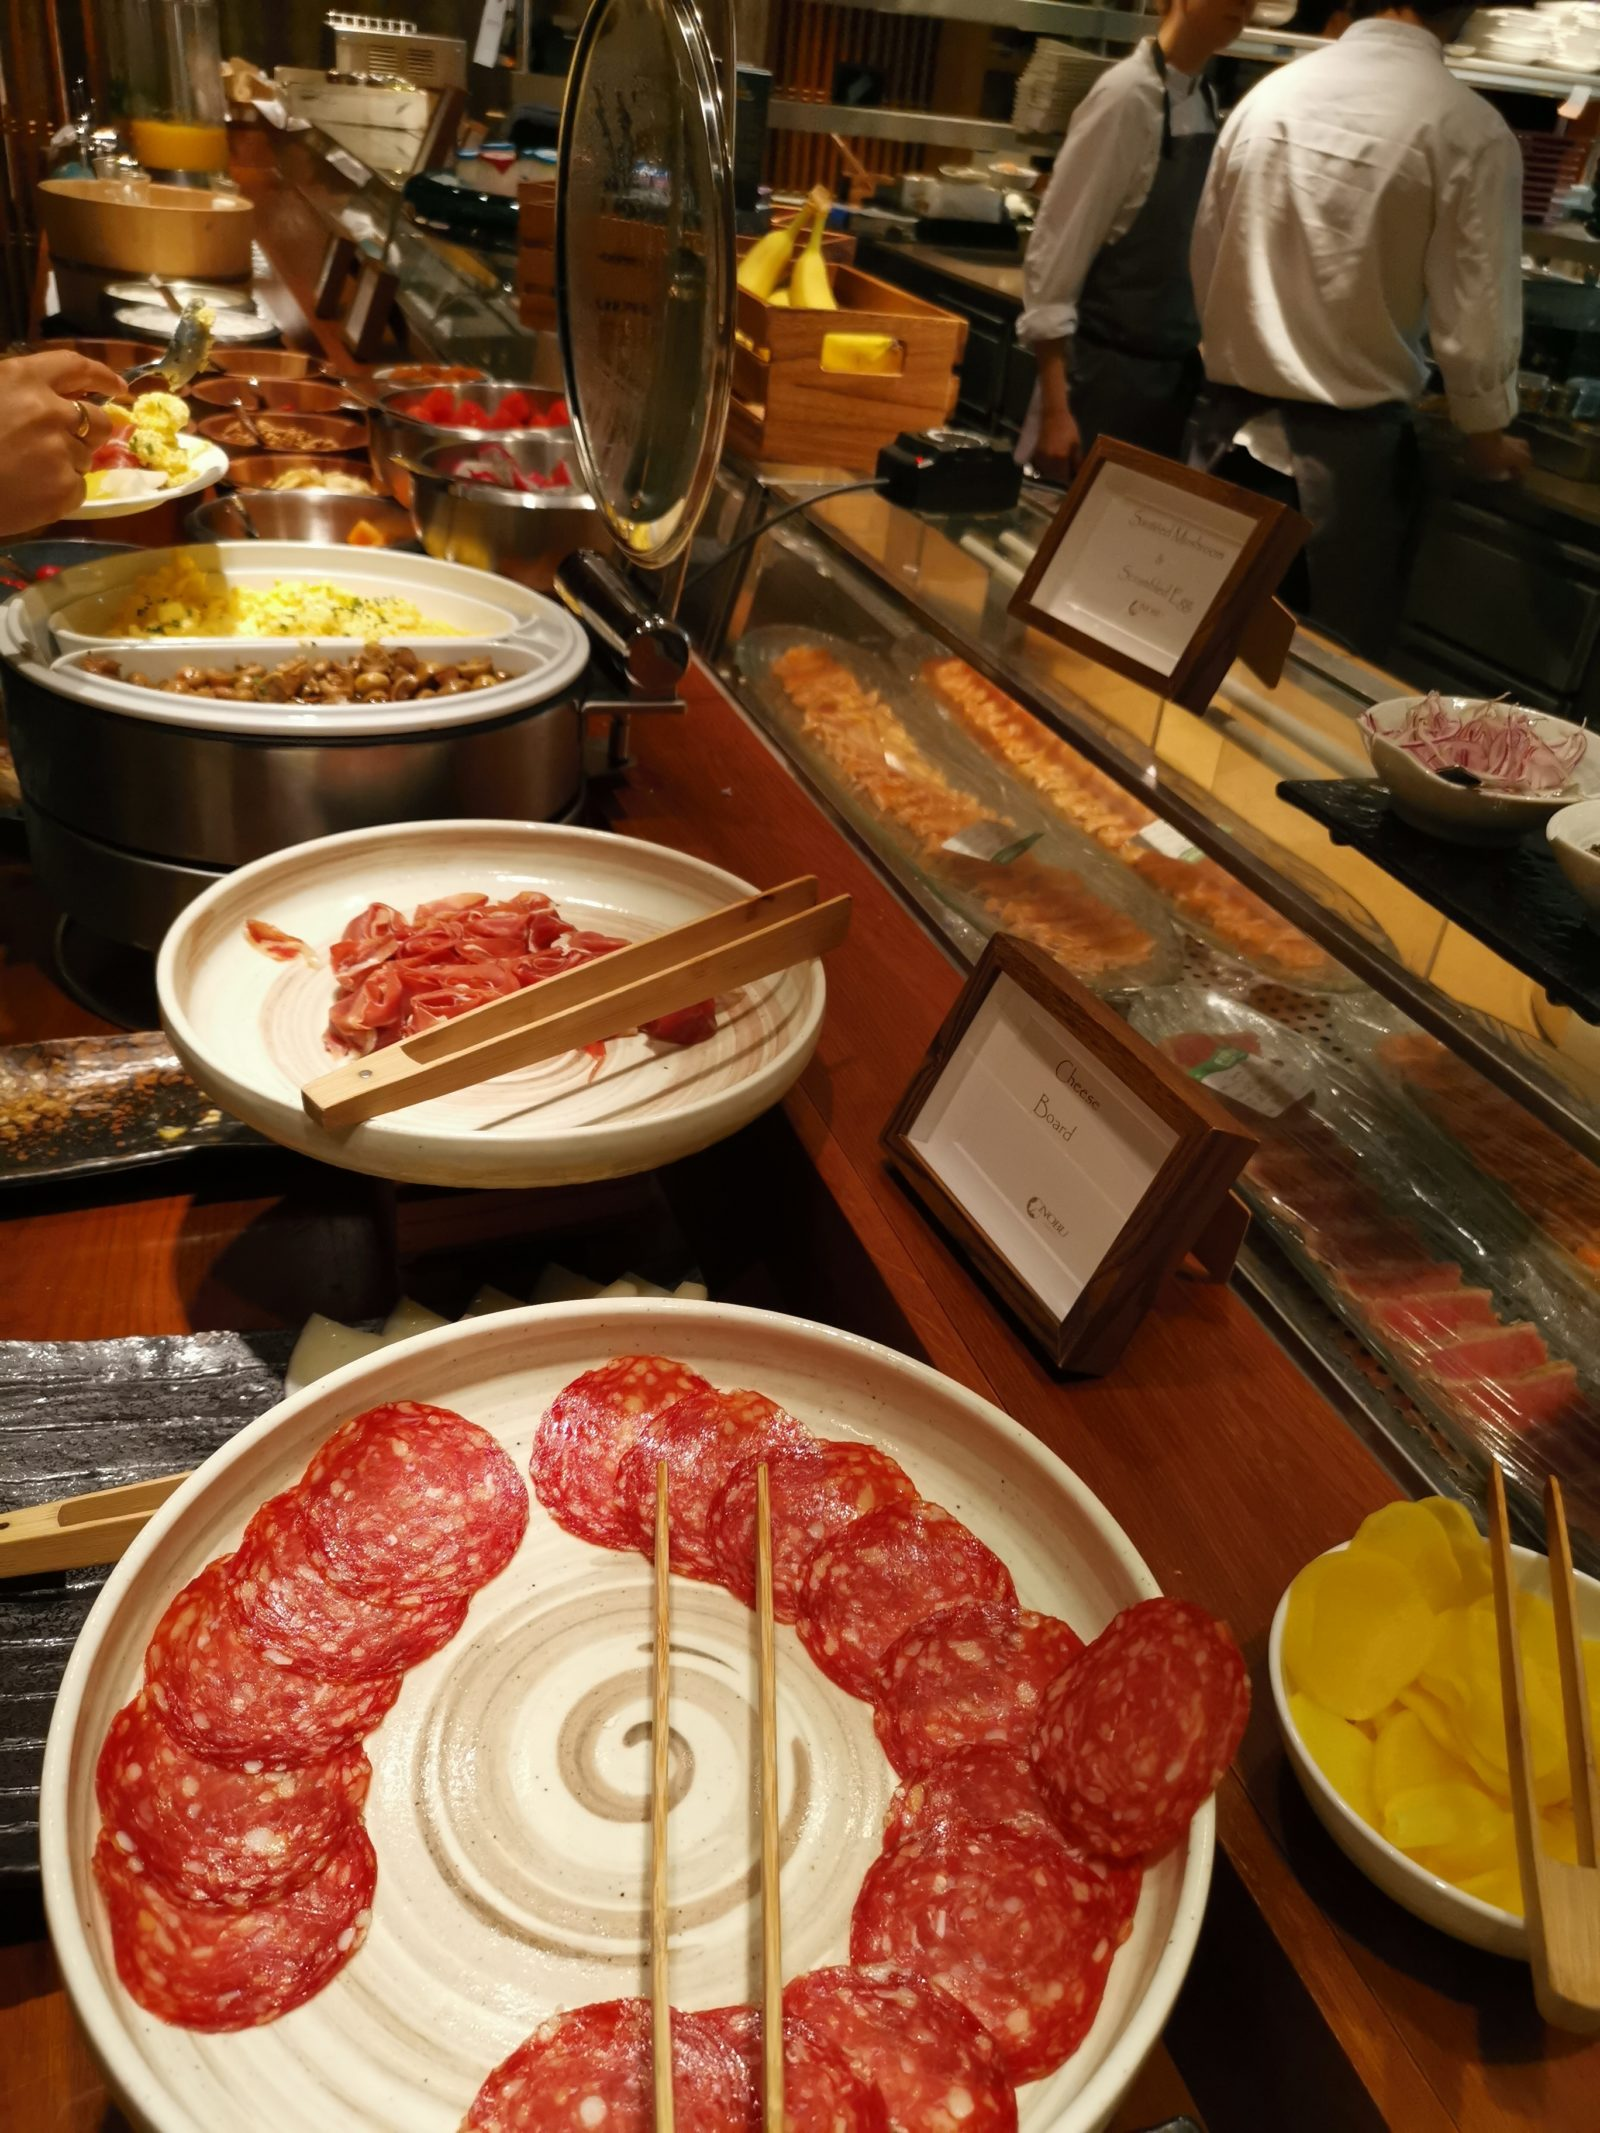 Buffet breakfast at Nobu Hotel Shoreditch